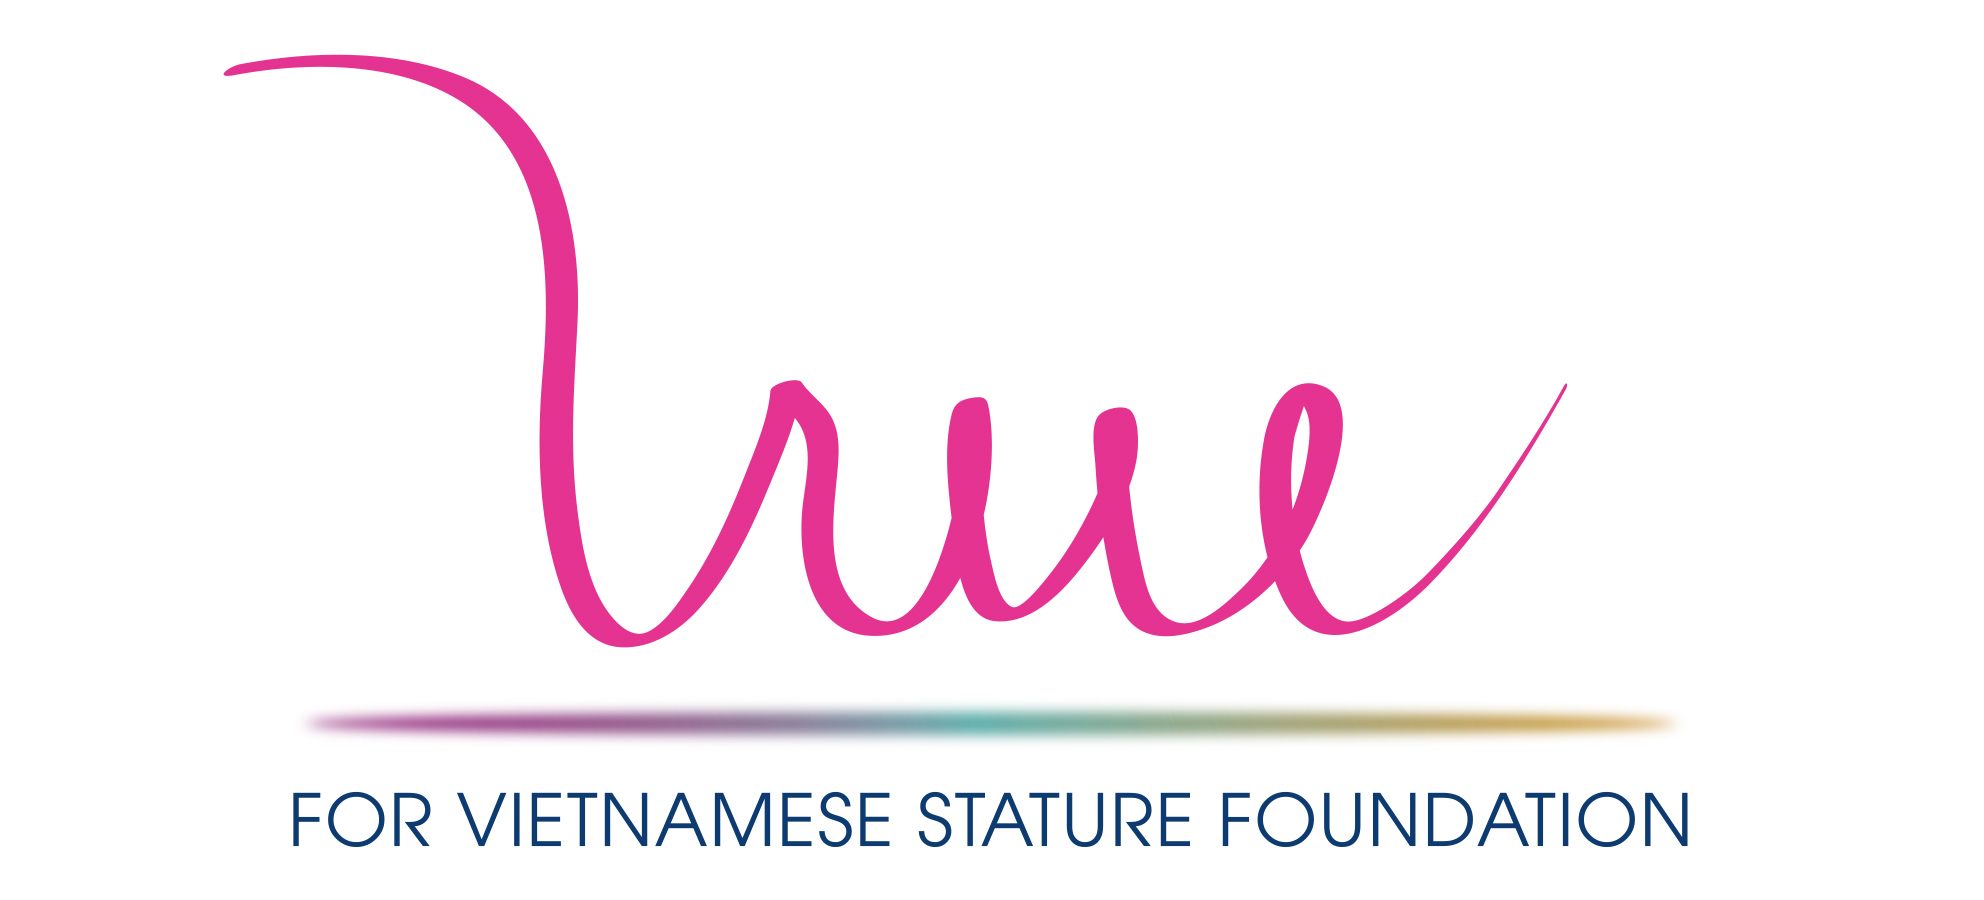 For Vietnamese Stature Foundation.jpg